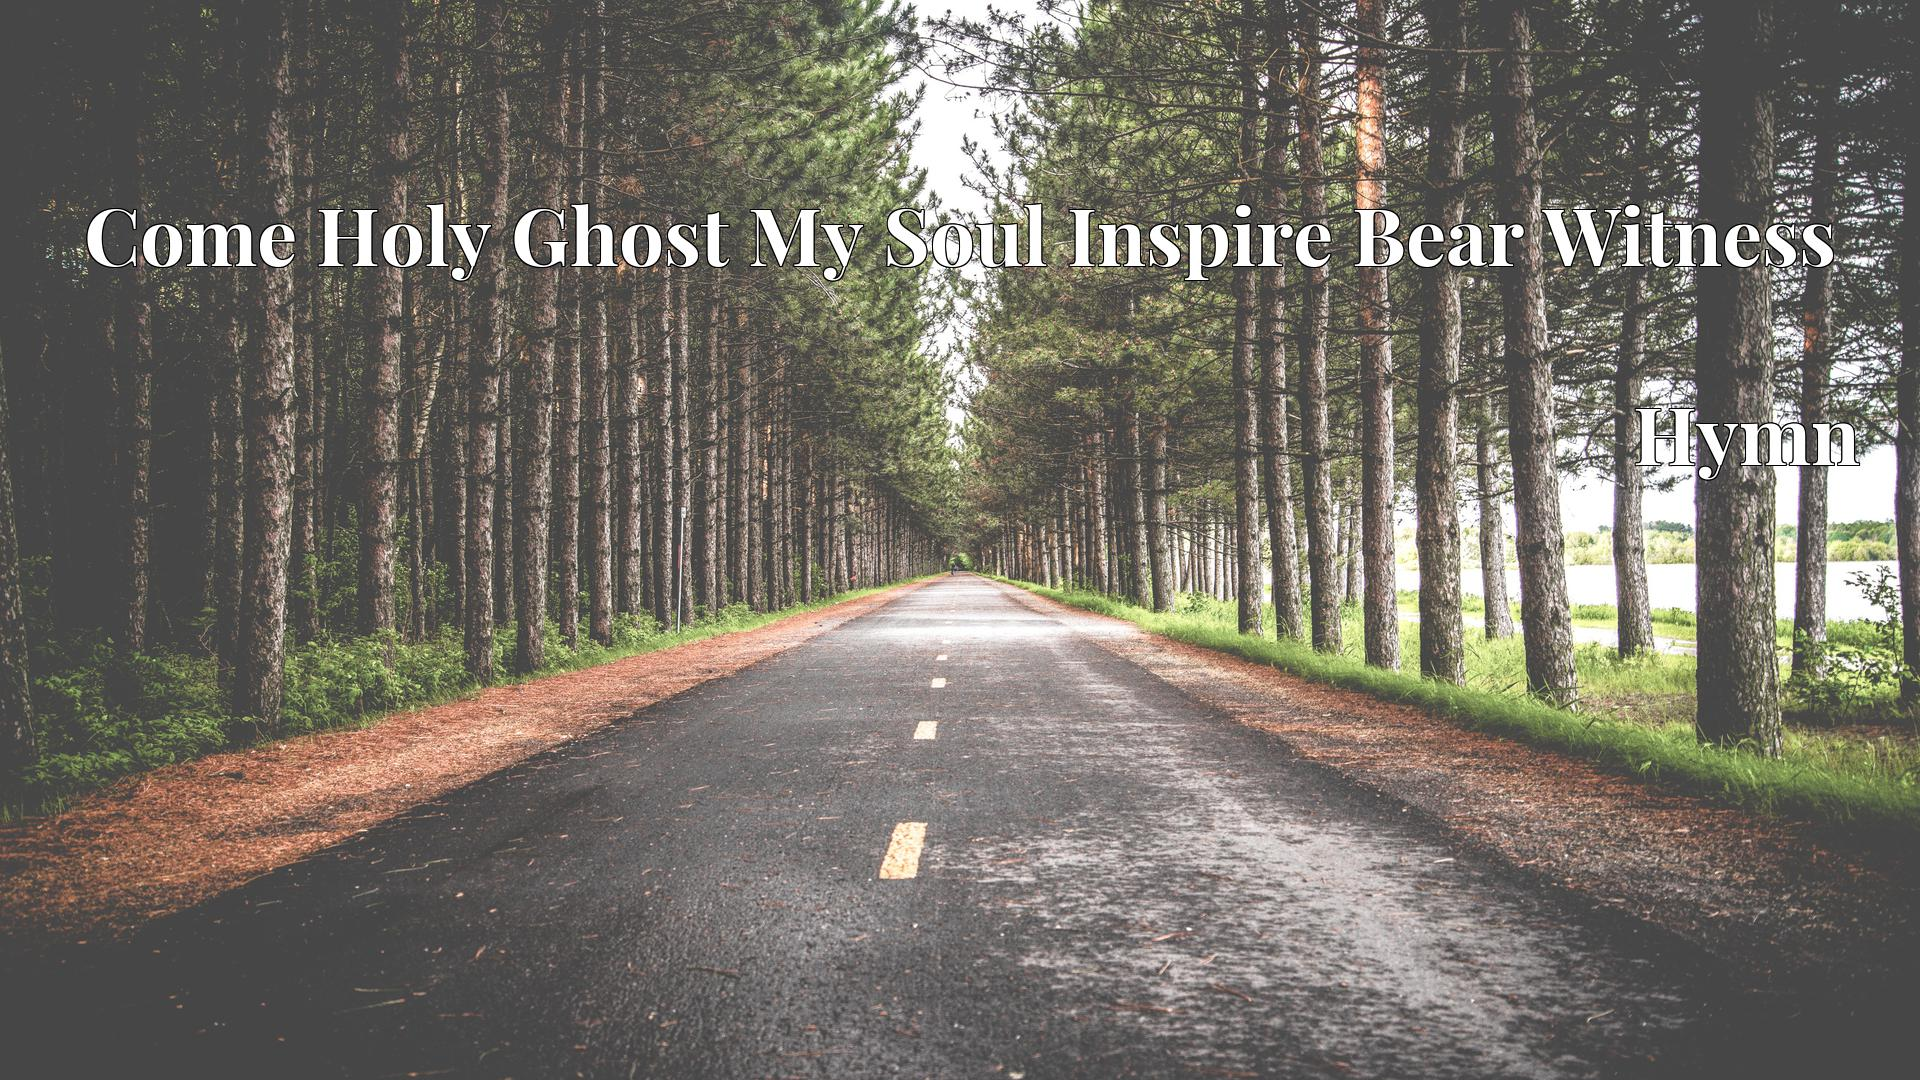 Come Holy Ghost My Soul Inspire Bear Witness - Hymn